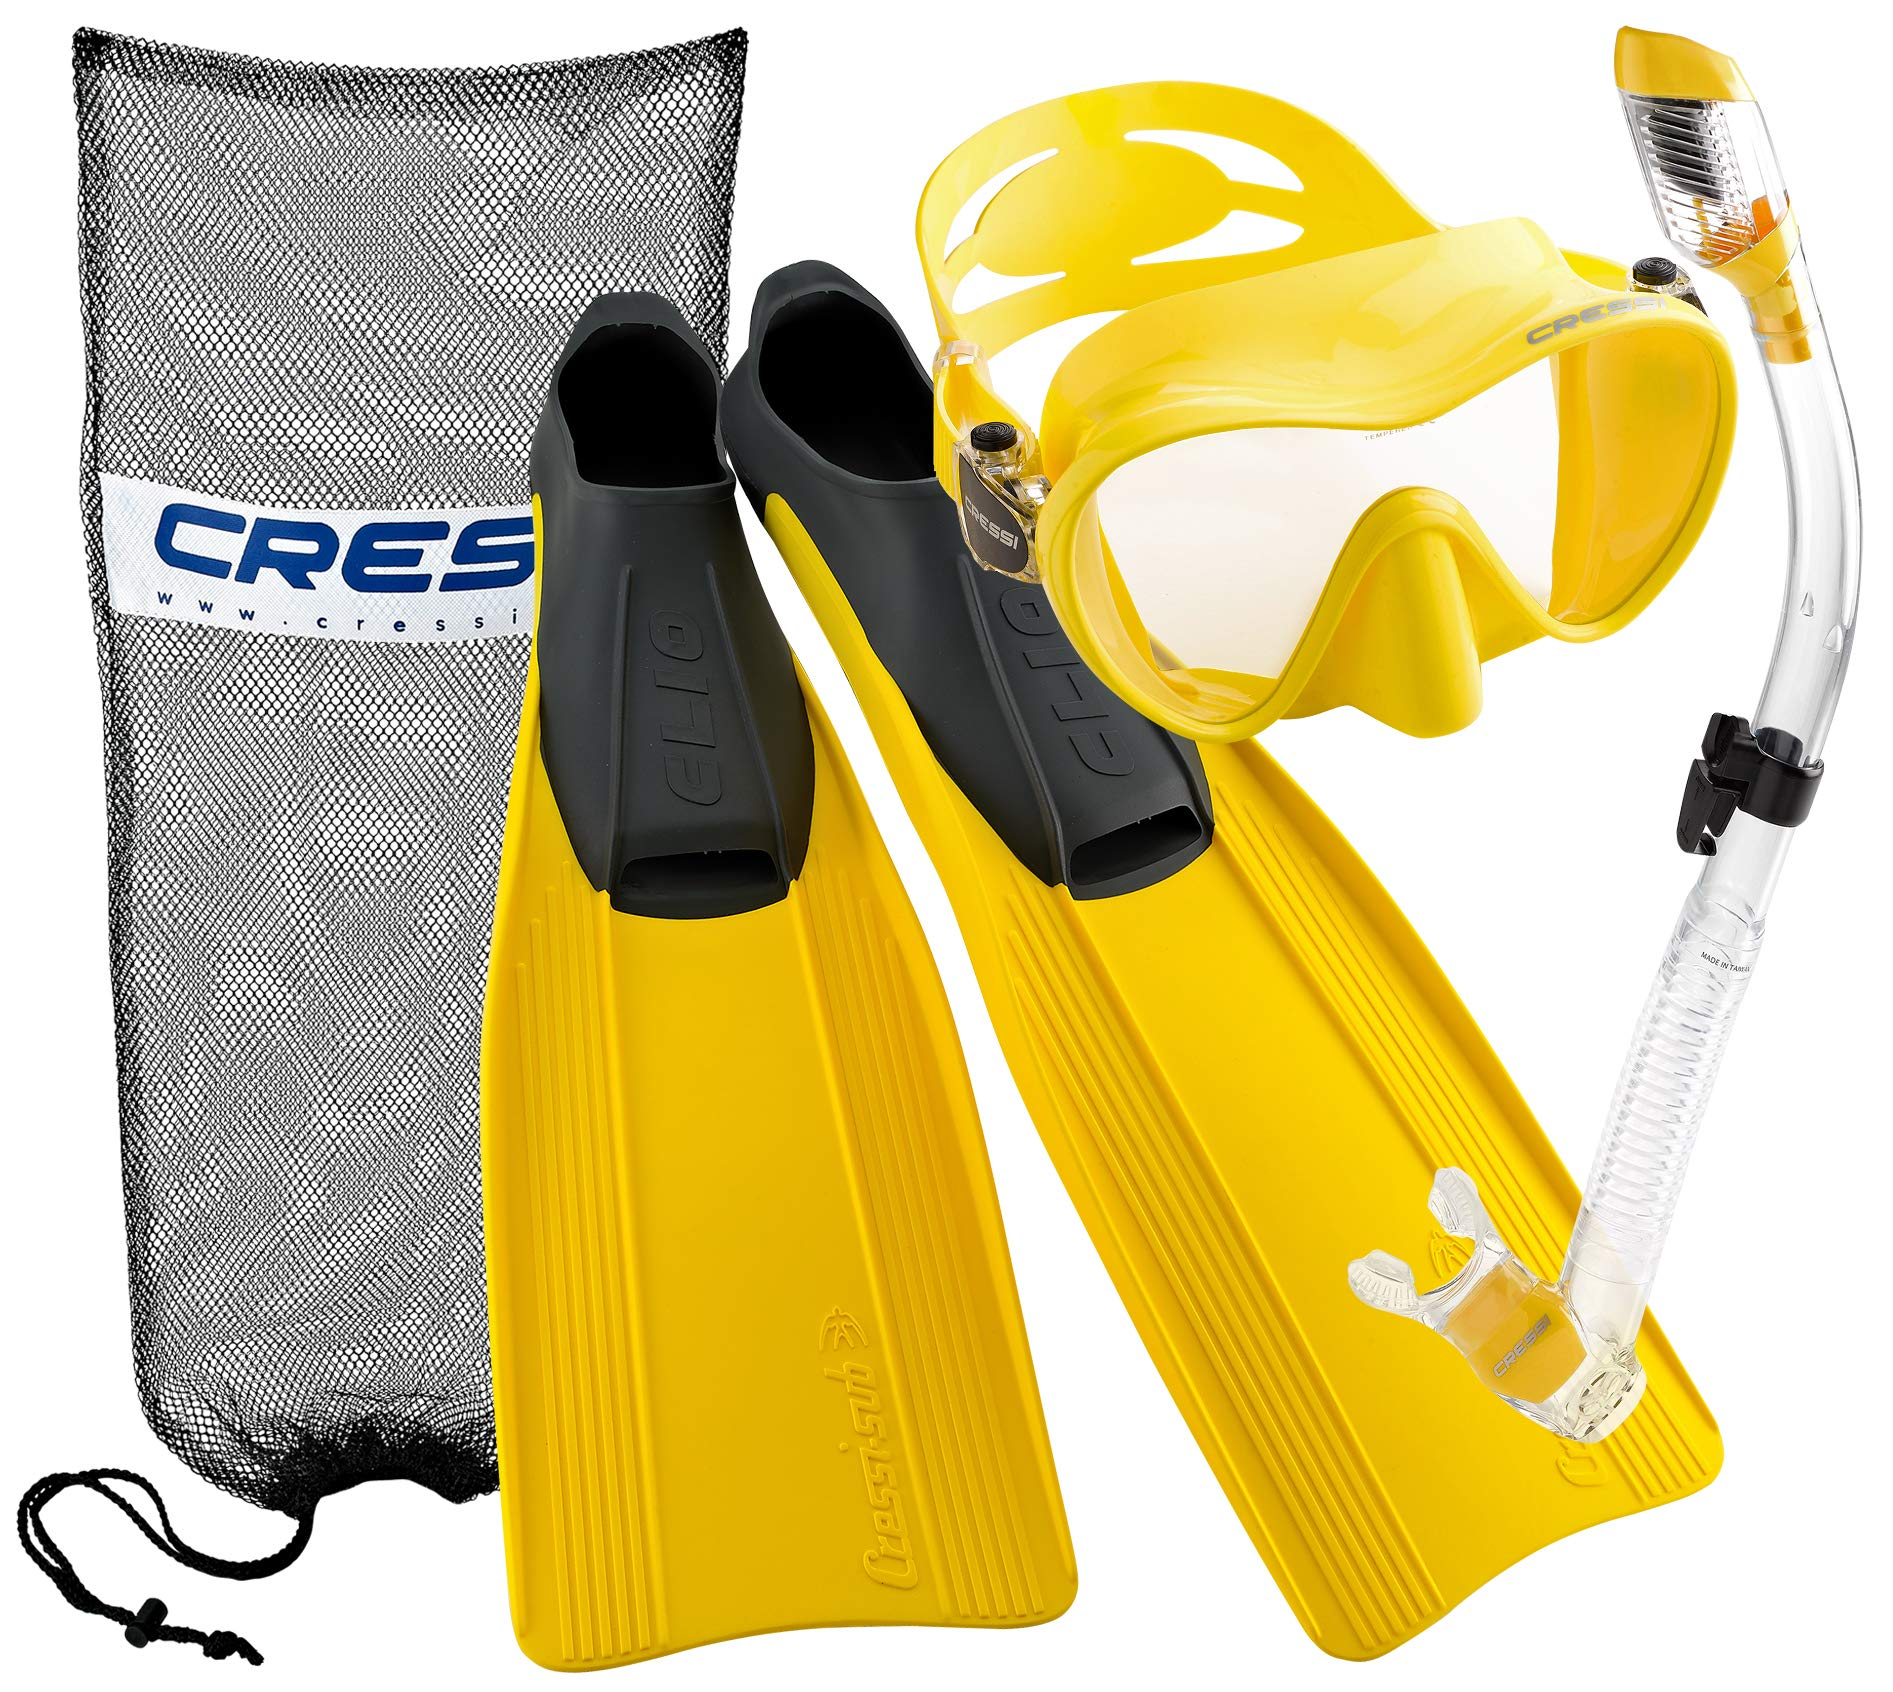 Cressi Clio Full Foot Fin Frameless Mask Dry Snorkel Set with Carry Bag, Yellow, Size 7/8-Size 41/42 by Cressi